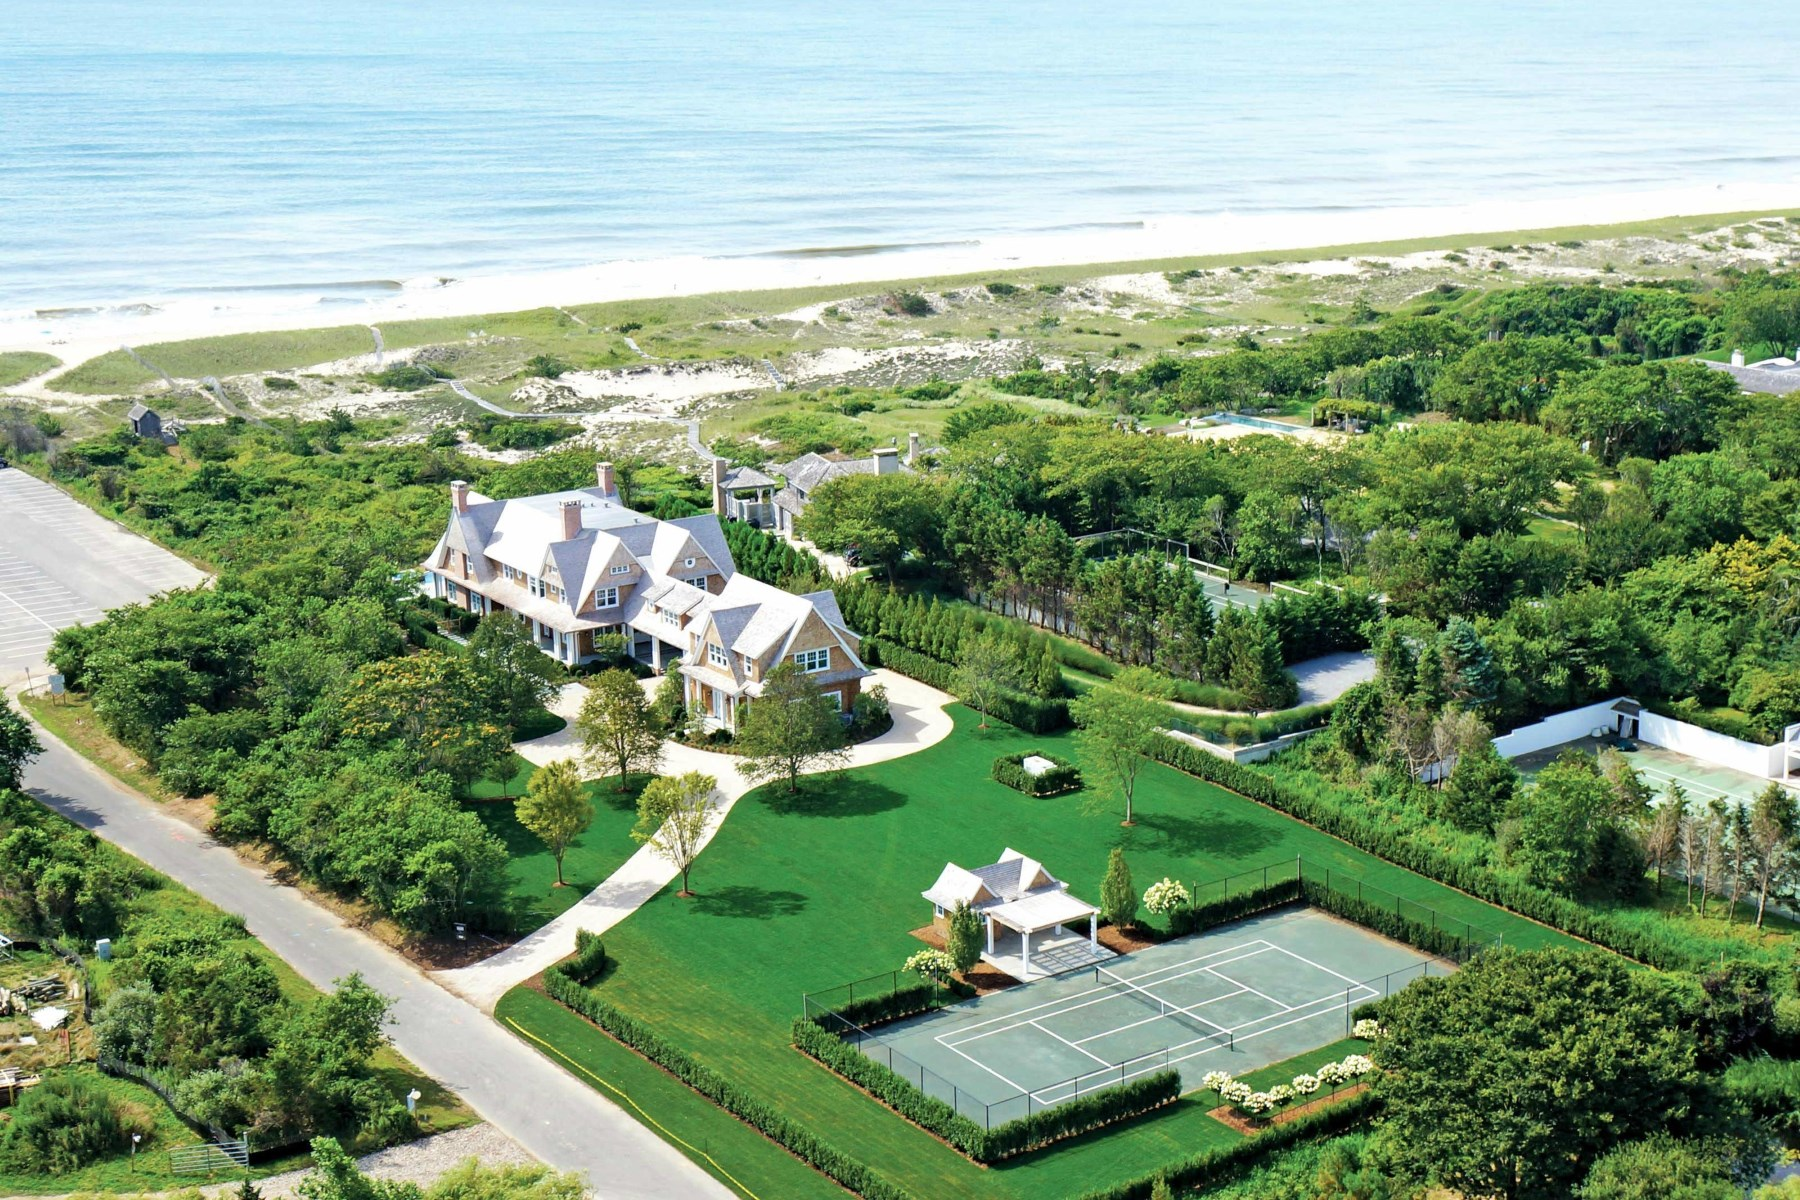 一戸建て のために 売買 アット East Hampton Oceanfront, Pool and Tennis 38 Two Mile Hollow Road East Hampton Village, East Hampton, ニューヨーク 11937 アメリカ合衆国